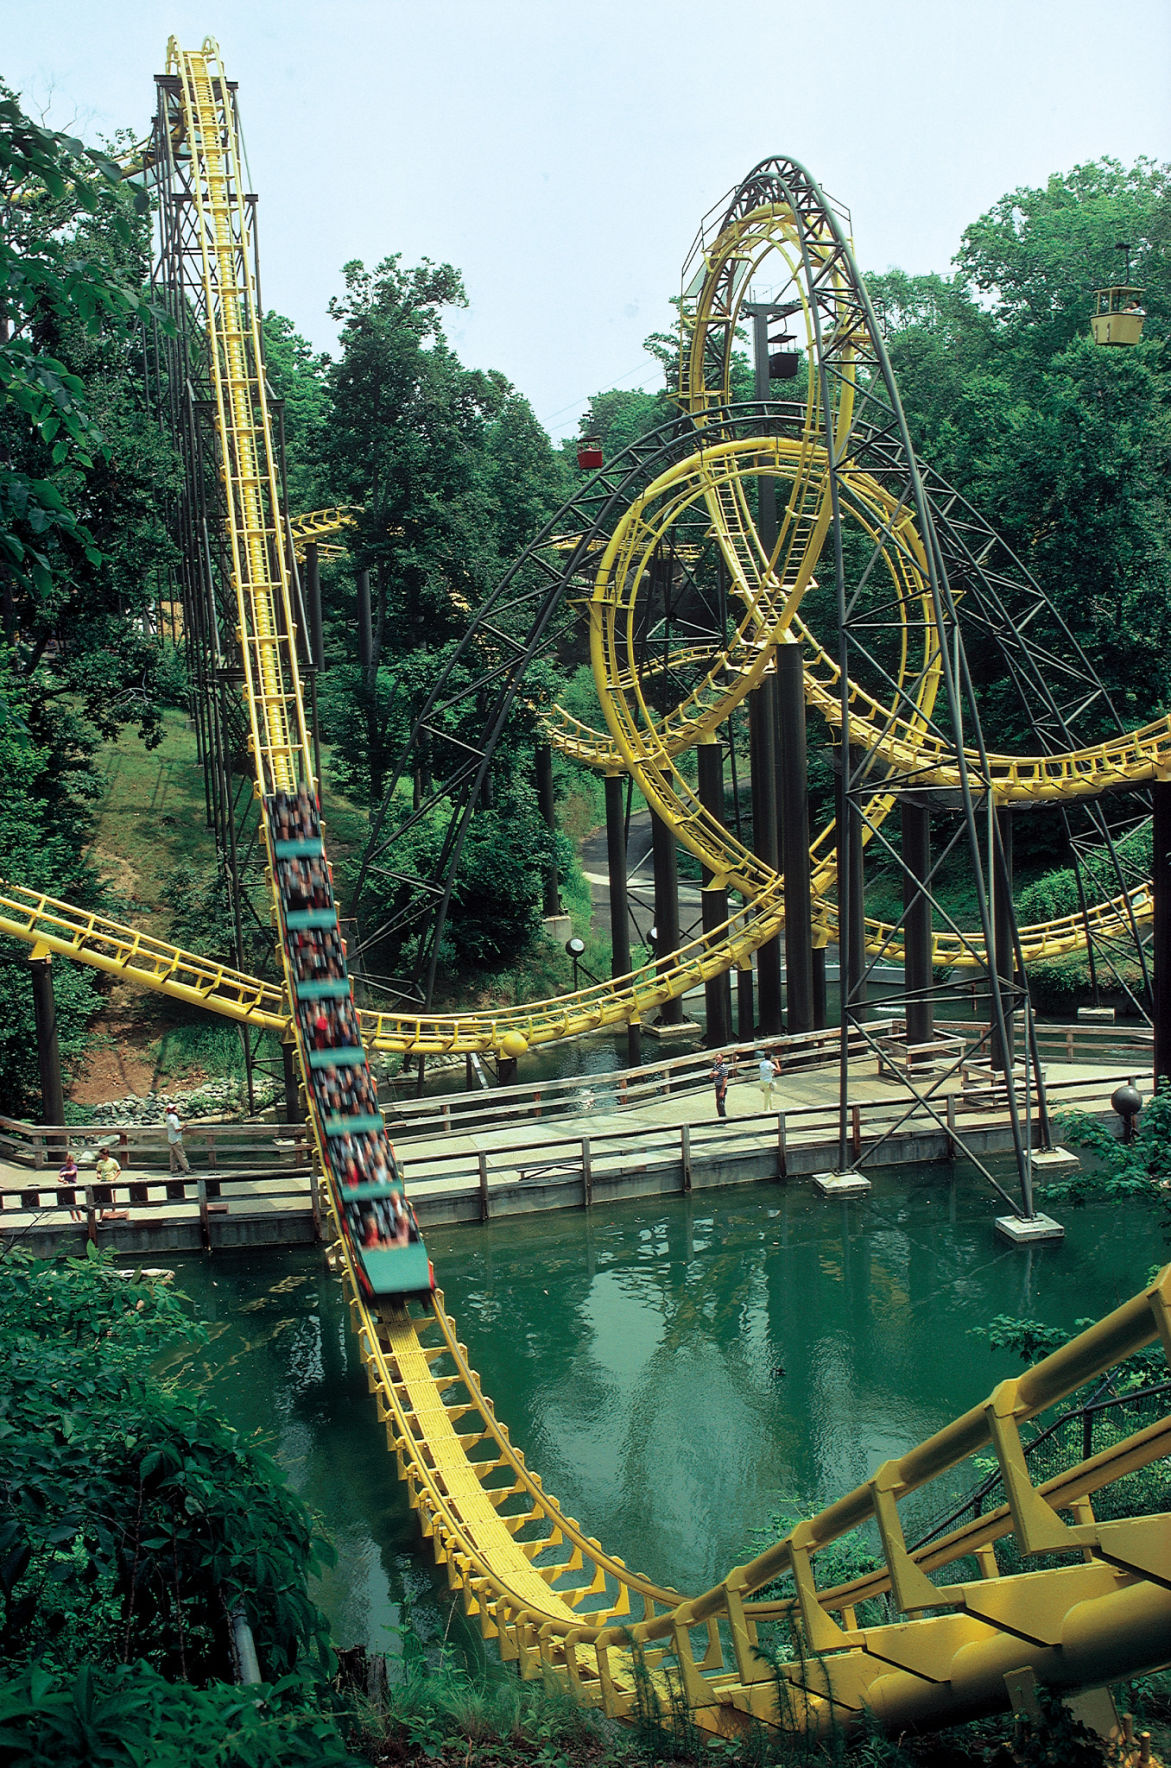 Busch Gardens Williamsburg Celebrates 40th Anniversary Of Nostalgic Roller Coaster On Liberty